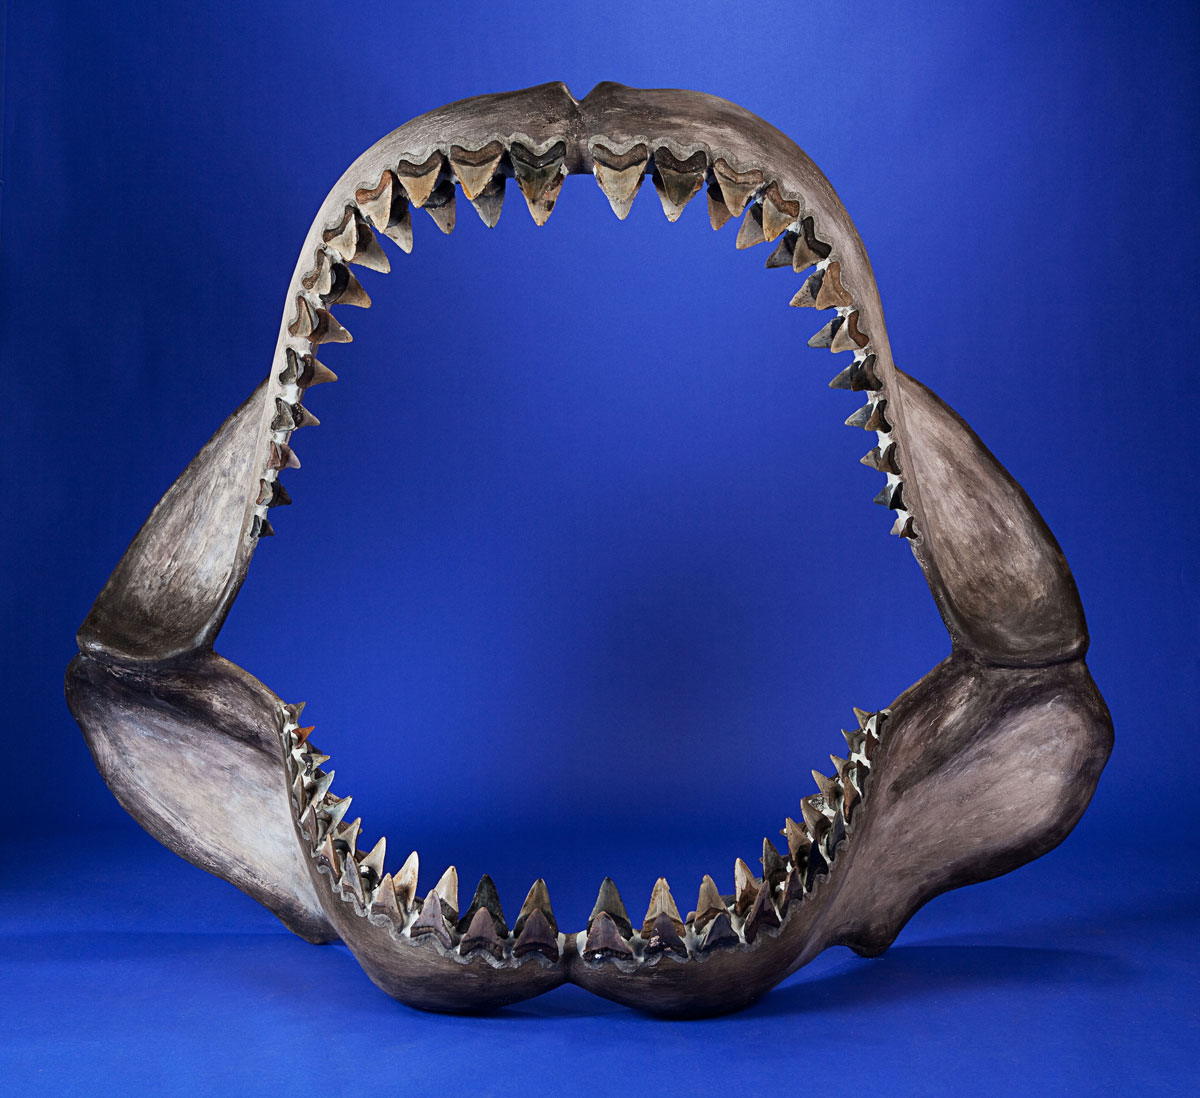 Tyrannosaurus May Bring $1,000,000+ in Heritage Auctions' New York Natural History Event ...